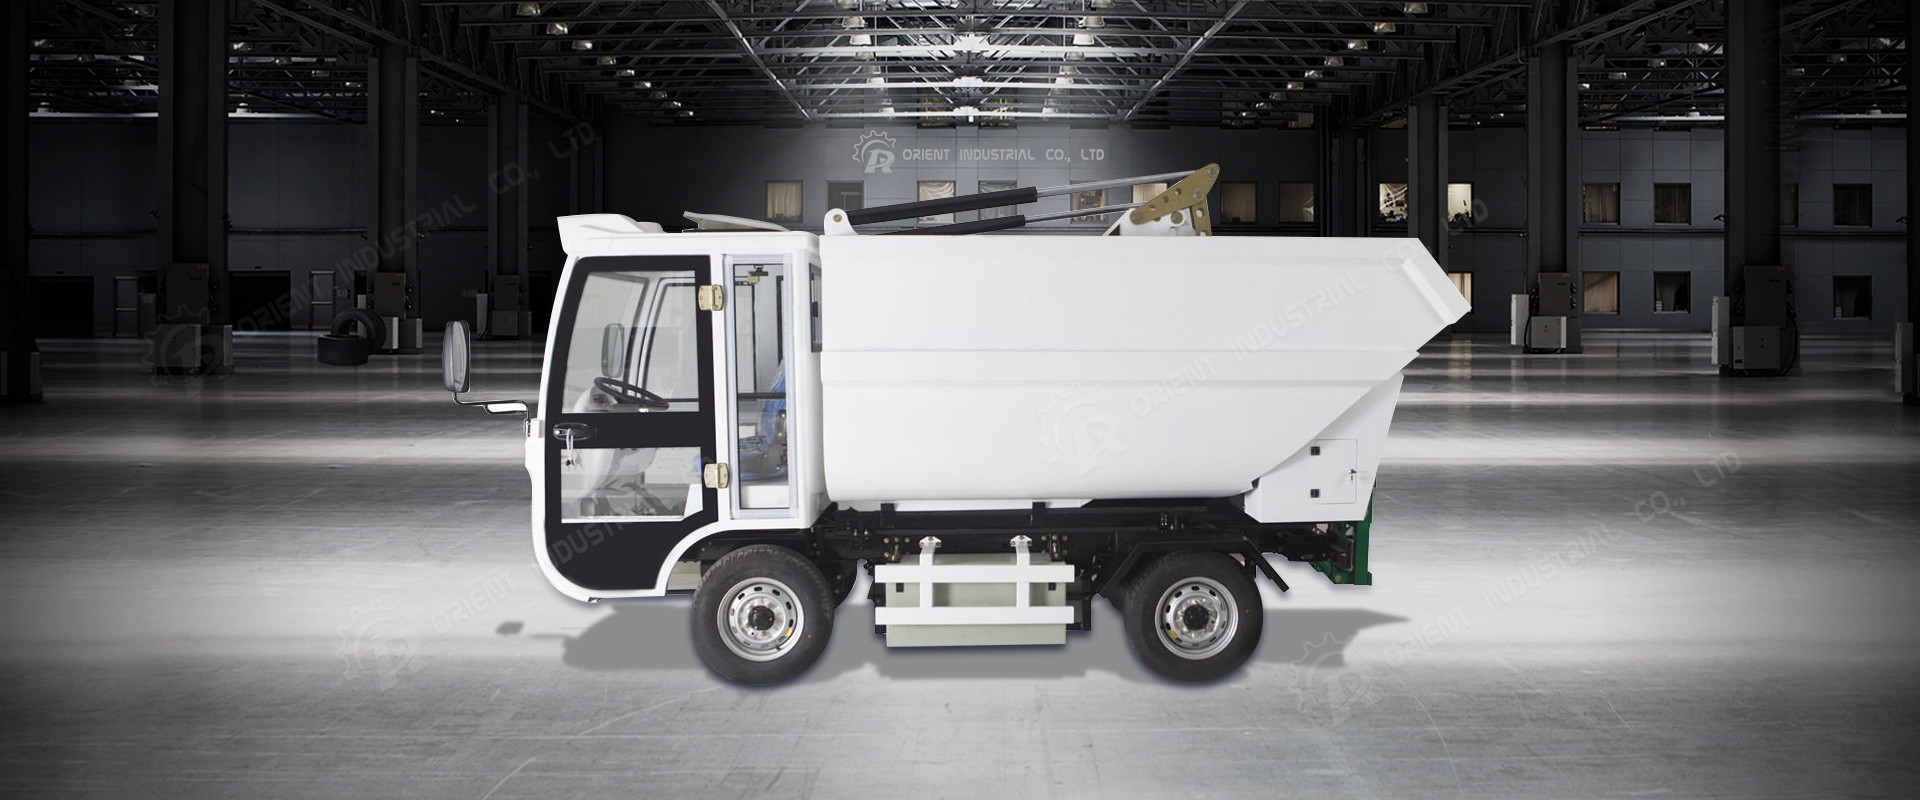 OR-H91 Rear Side Garbage Collecting Vehicle